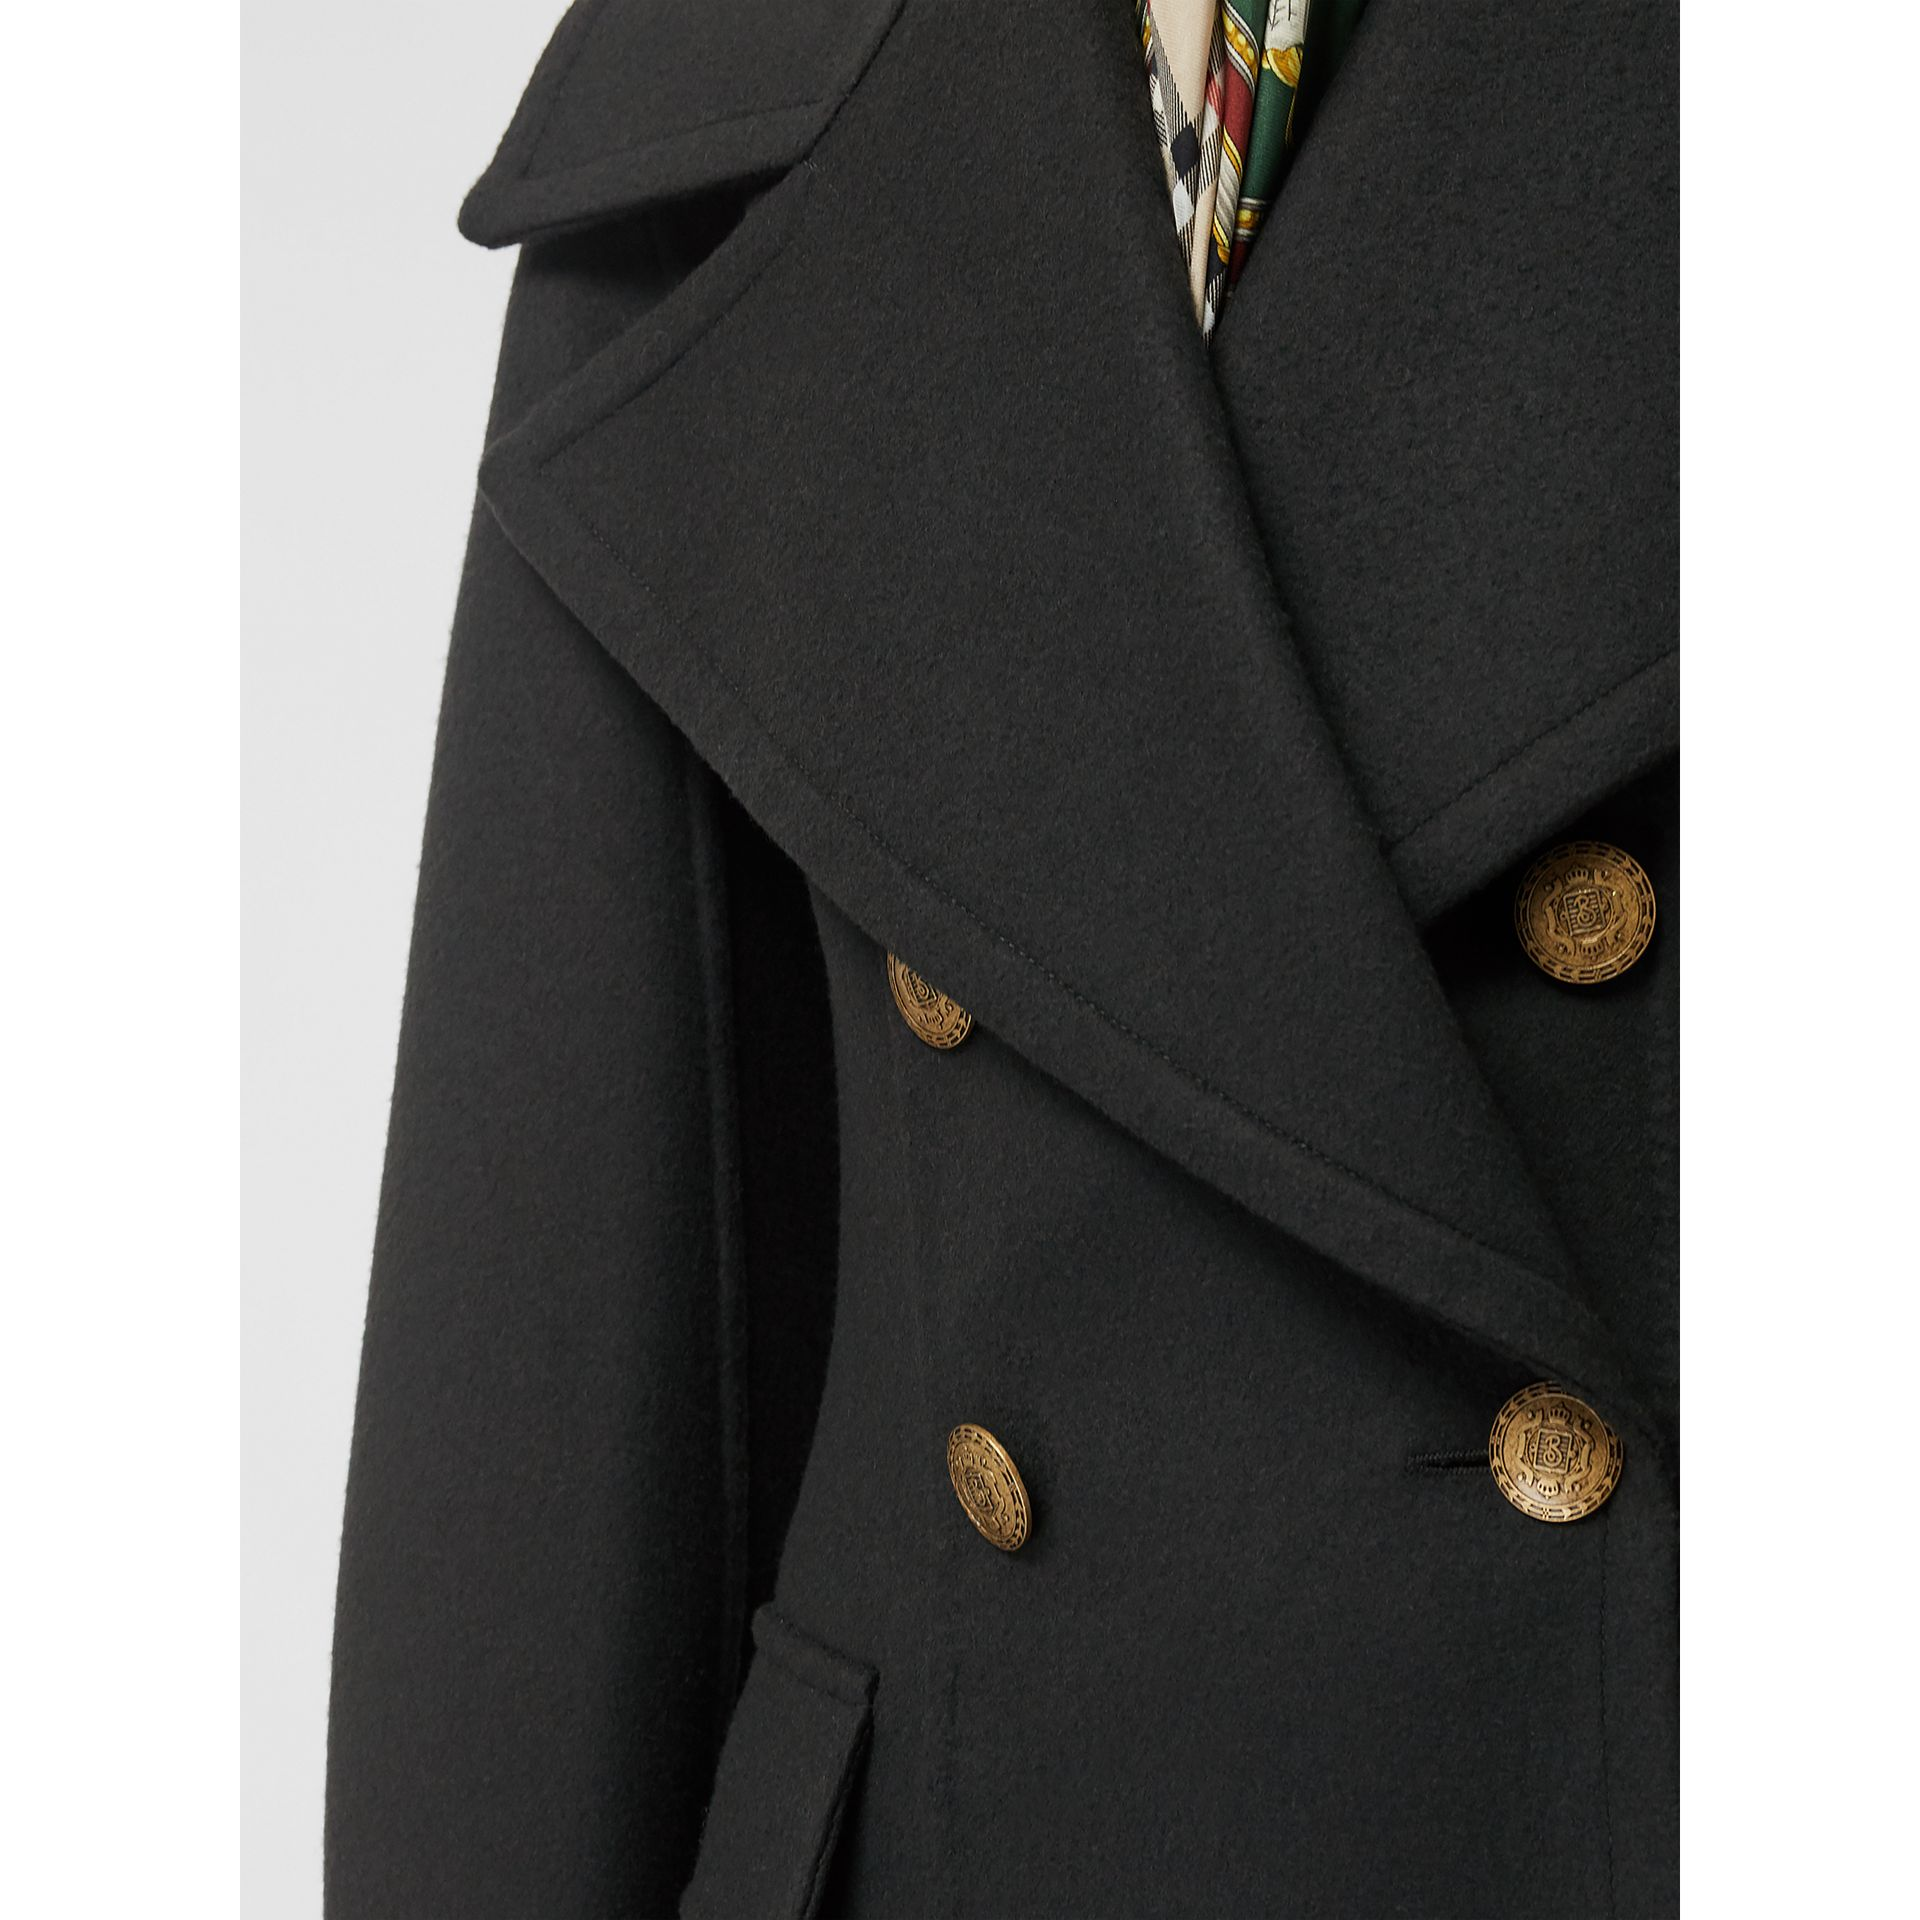 Doeskin Wool Tailored Coat in Dark Forest Green - Women | Burberry - gallery image 4